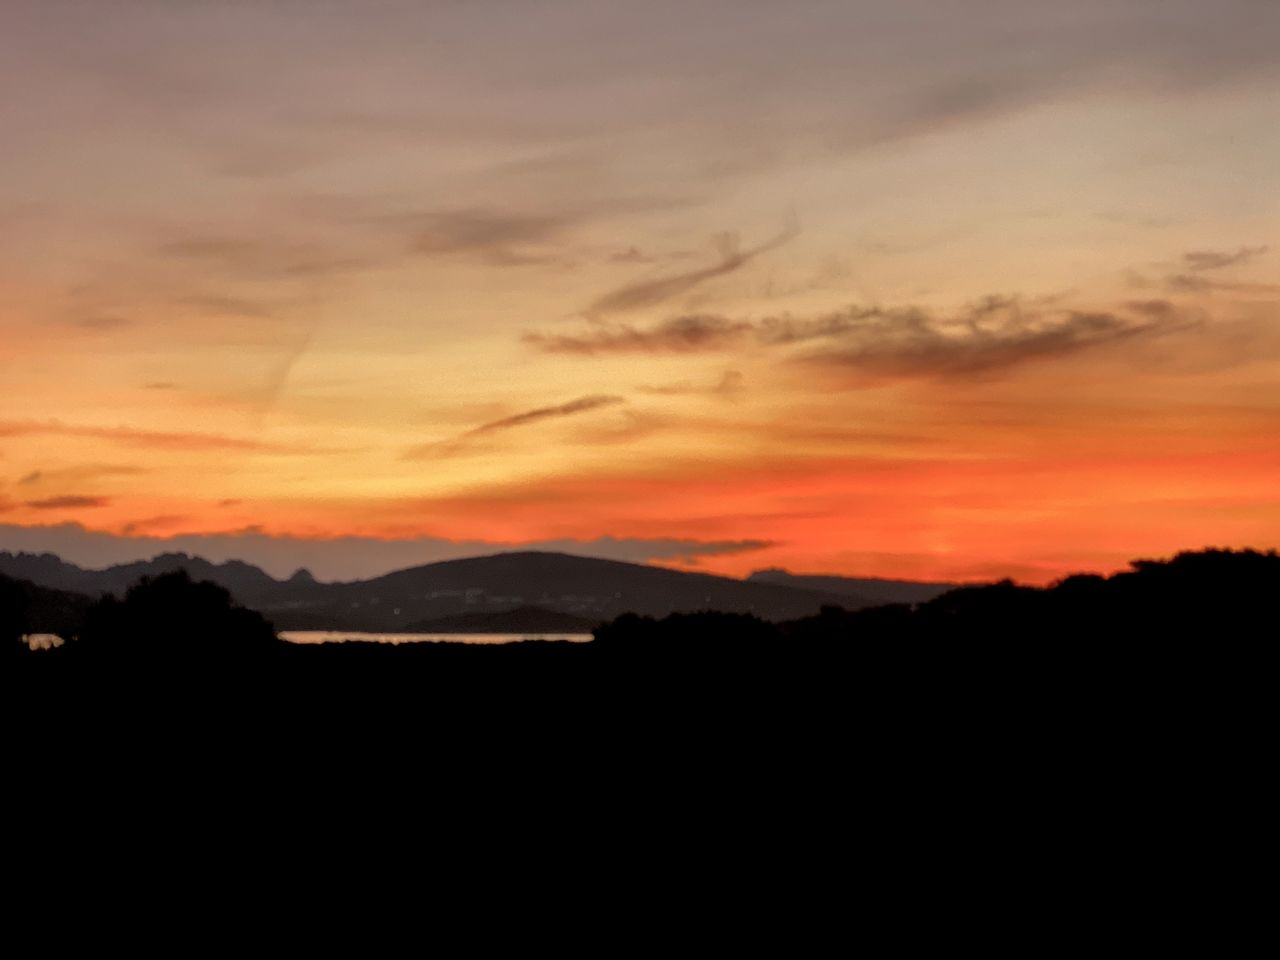 sunset, silhouette, sky, scenics - nature, beauty in nature, orange color, tranquil scene, tranquility, cloud - sky, nature, idyllic, no people, mountain, environment, landscape, outdoors, non-urban scene, copy space, dramatic sky, majestic